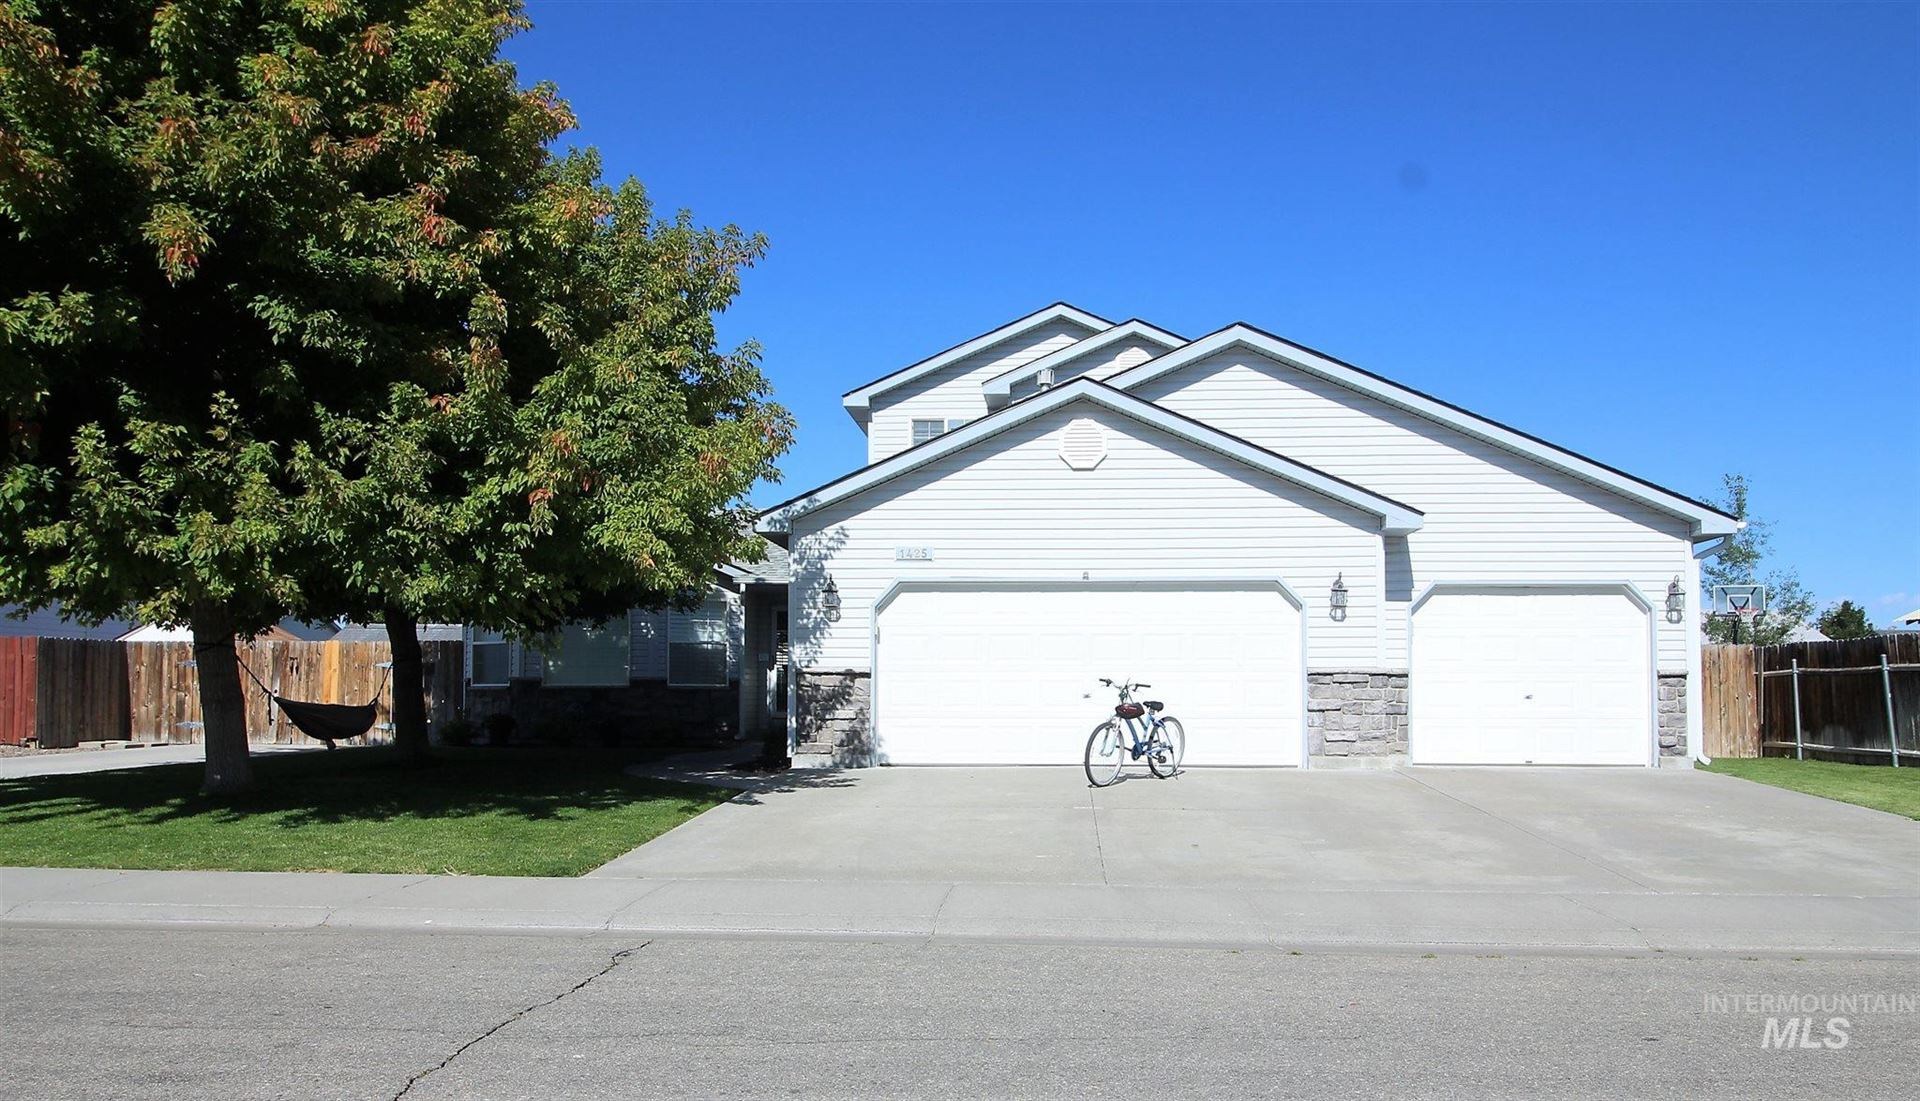 1425 Lara Pl, Mountain Home, ID 83647 - MLS#: 98774452